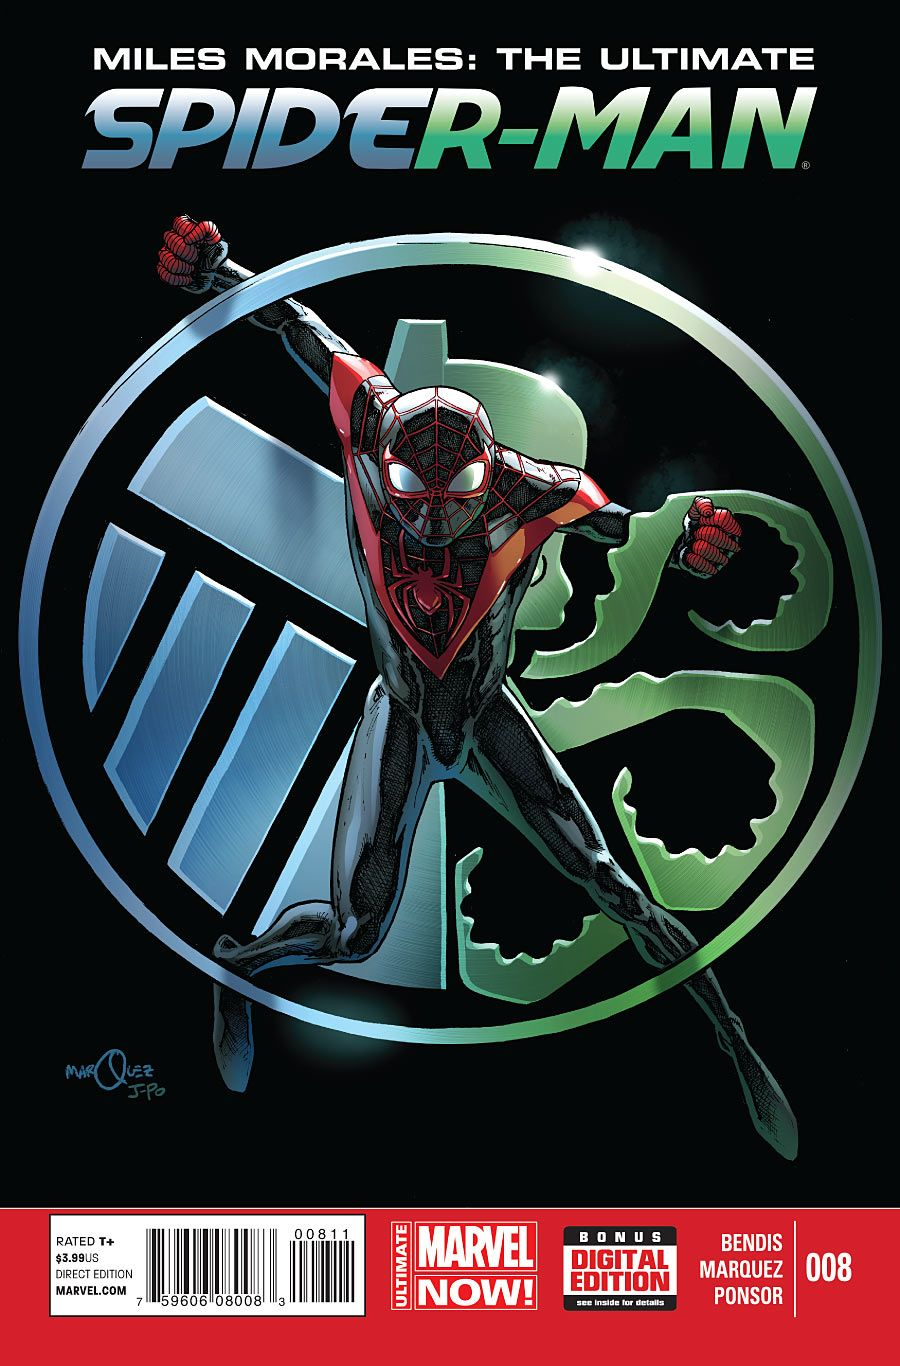 Miles Morales: The Ultimate Spider-Man #8